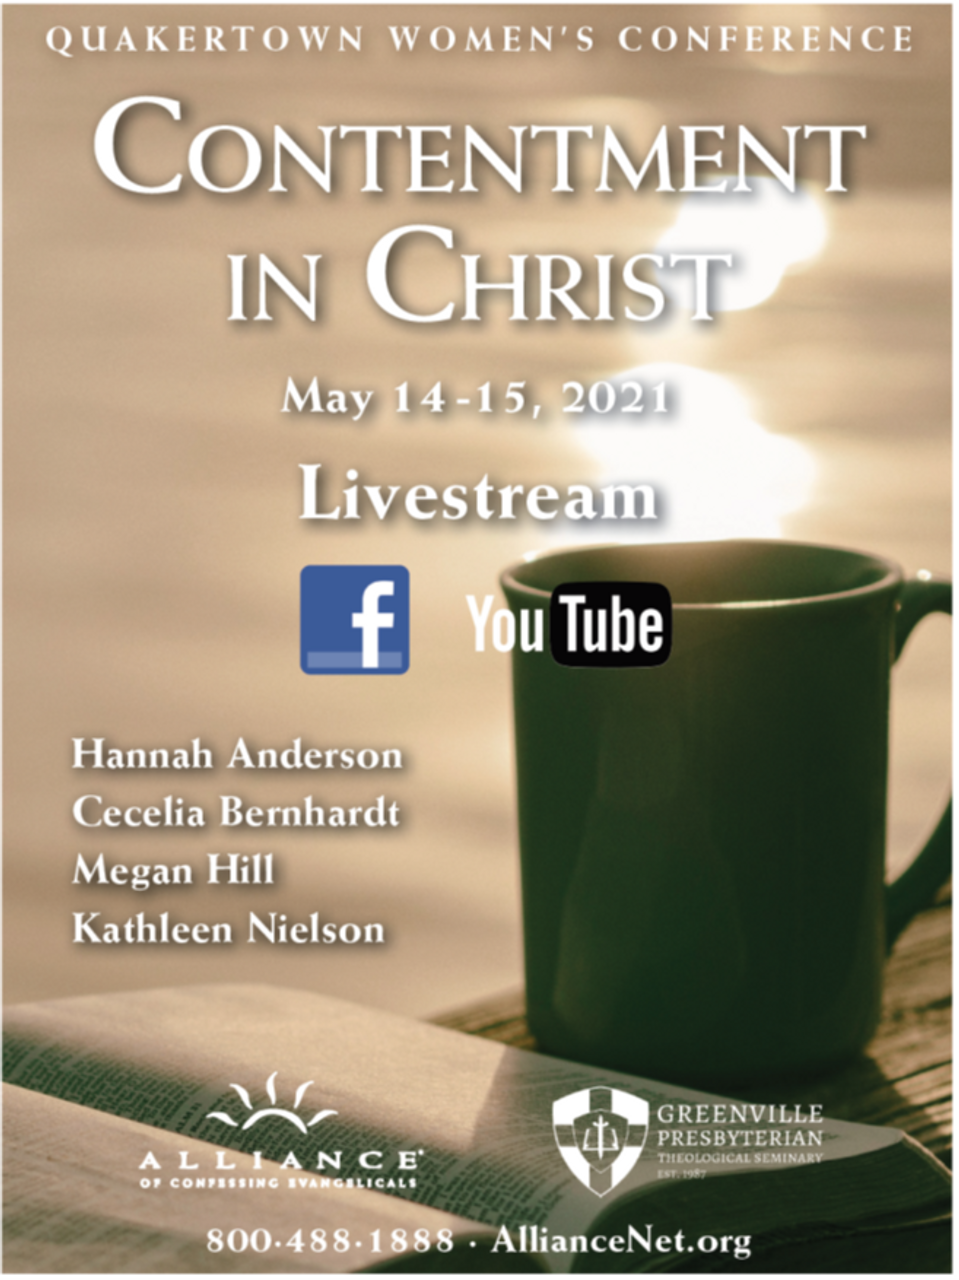 Quakertown Women's Conference Poster (8x11)